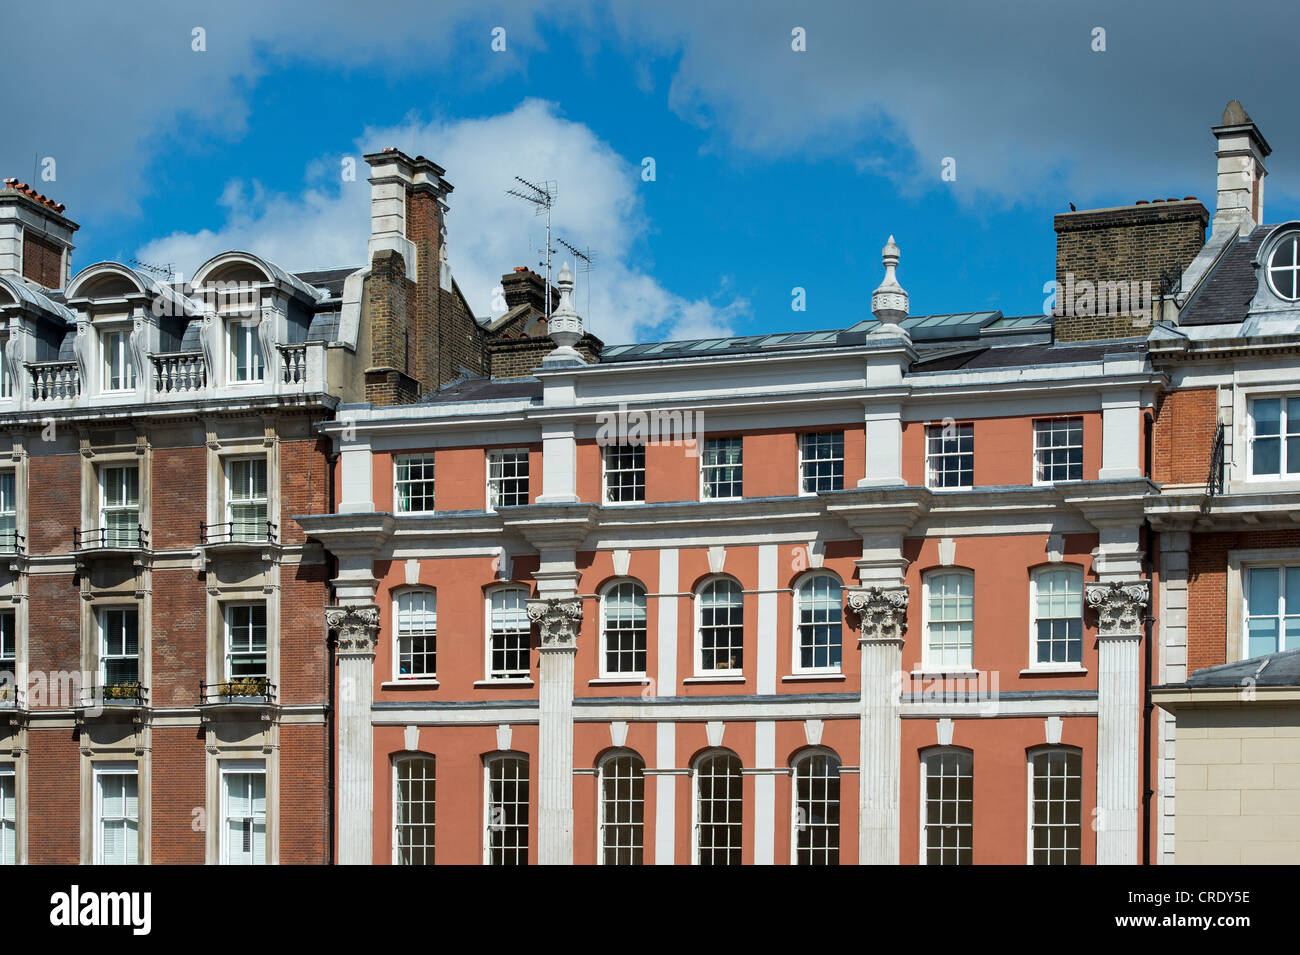 Covent garden buildings. London, England - Stock Image